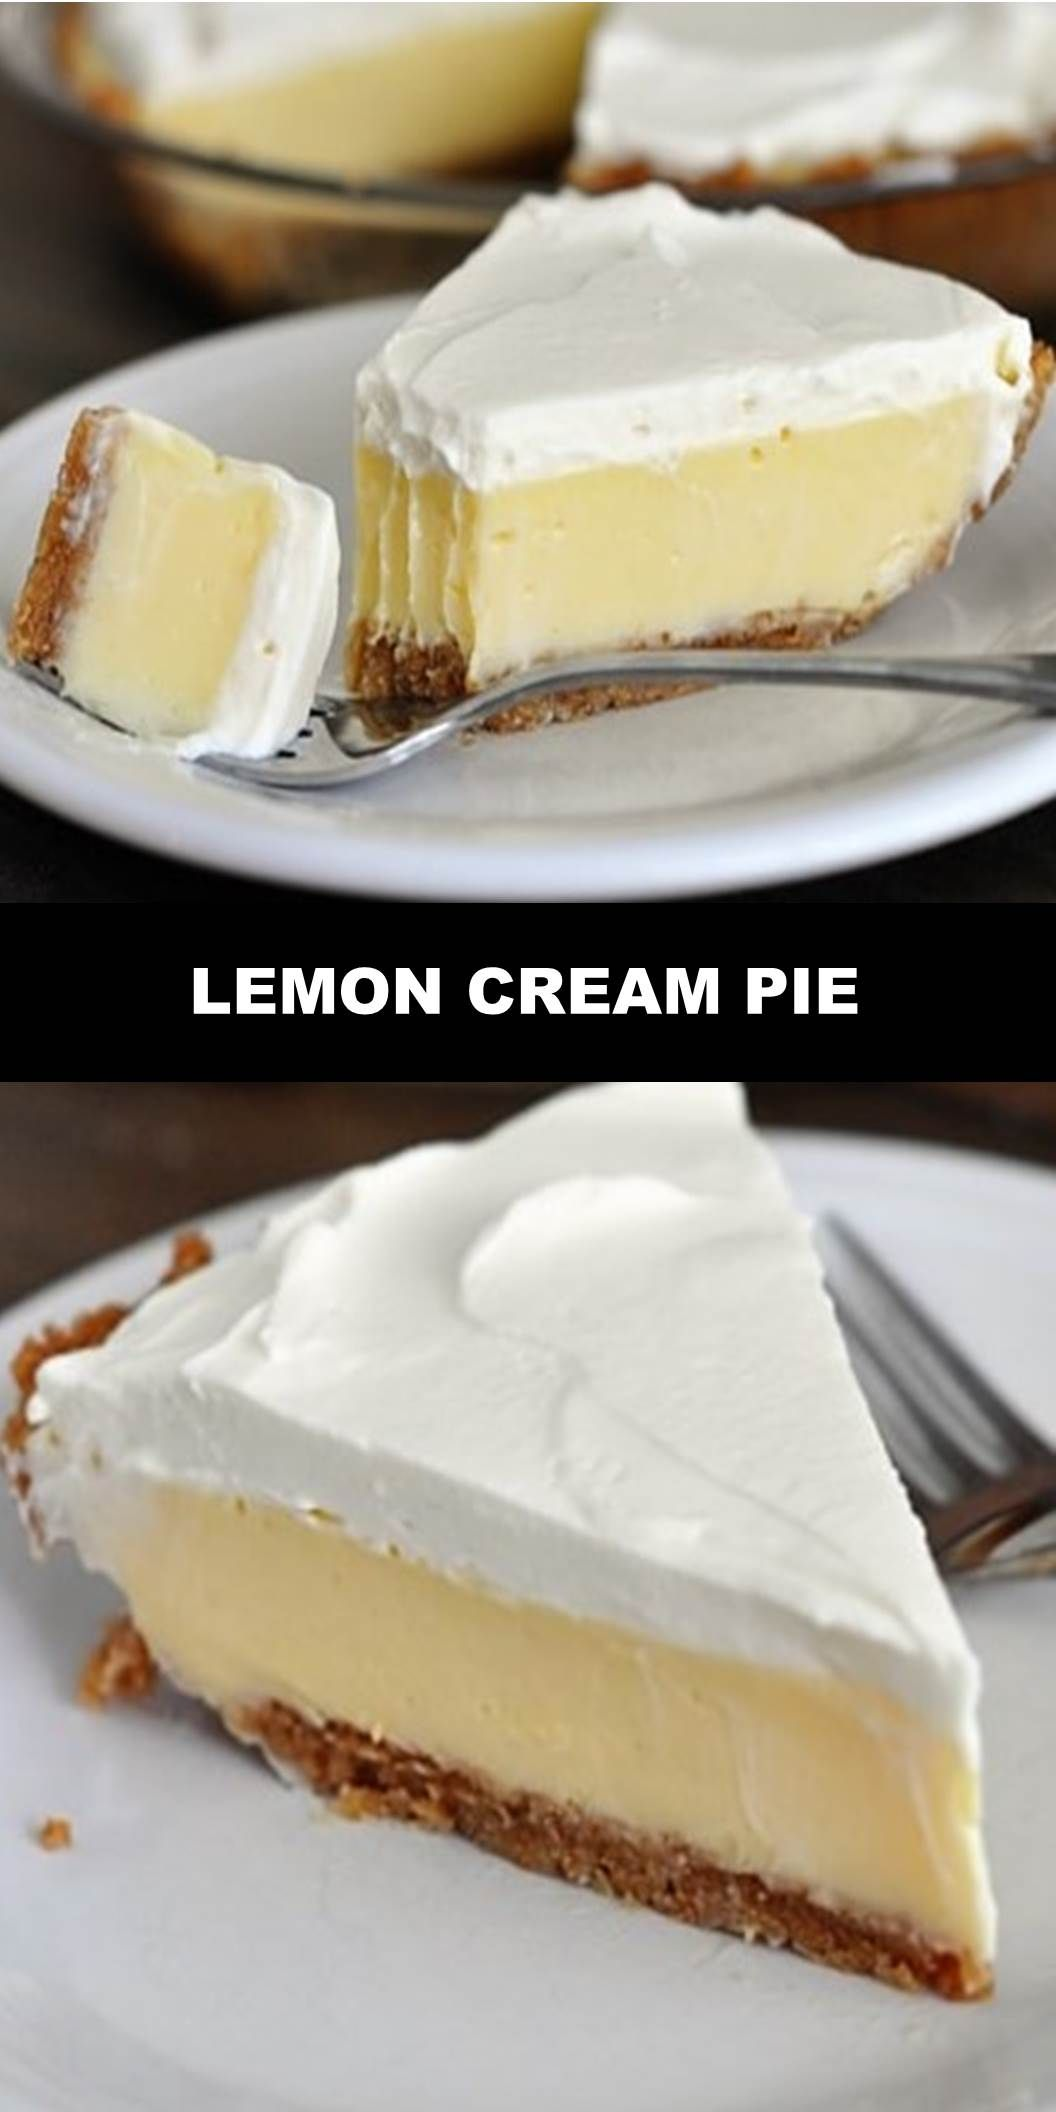 The World's Most Delicious LEMON CREAM PIE YIELD: 6-8 SERVINGS PREP TIME: 20 MINUTES COOK TIME: 28 MINUTES ADDITIONAL TIME: 3 HOURS TOTAL TIME: 3 HOURS 48 MINUTES